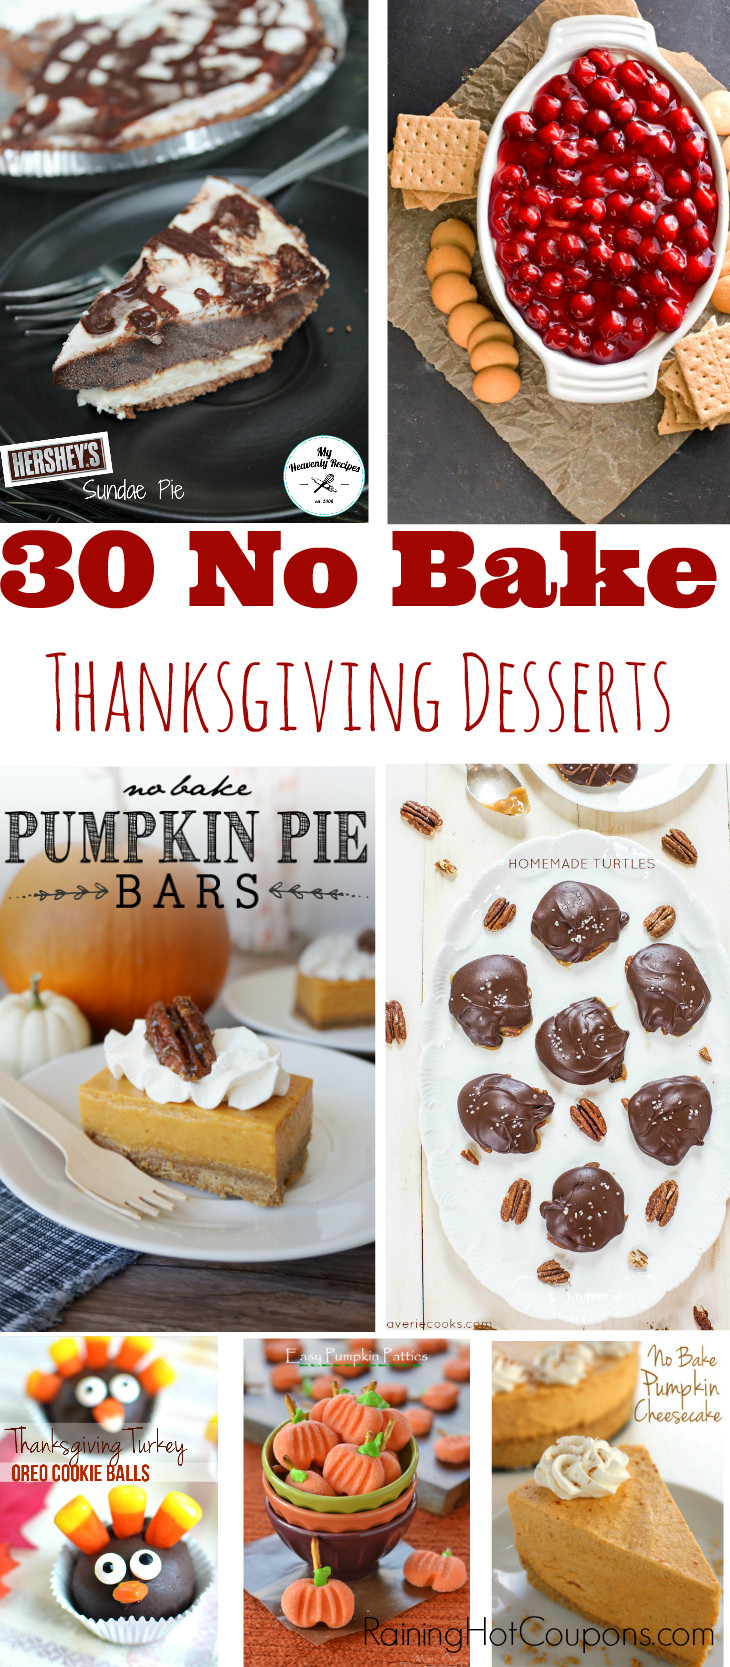 No Bake Thanksgiving Desserts  30 No Bake Desserts Perfect for Thanksgiving